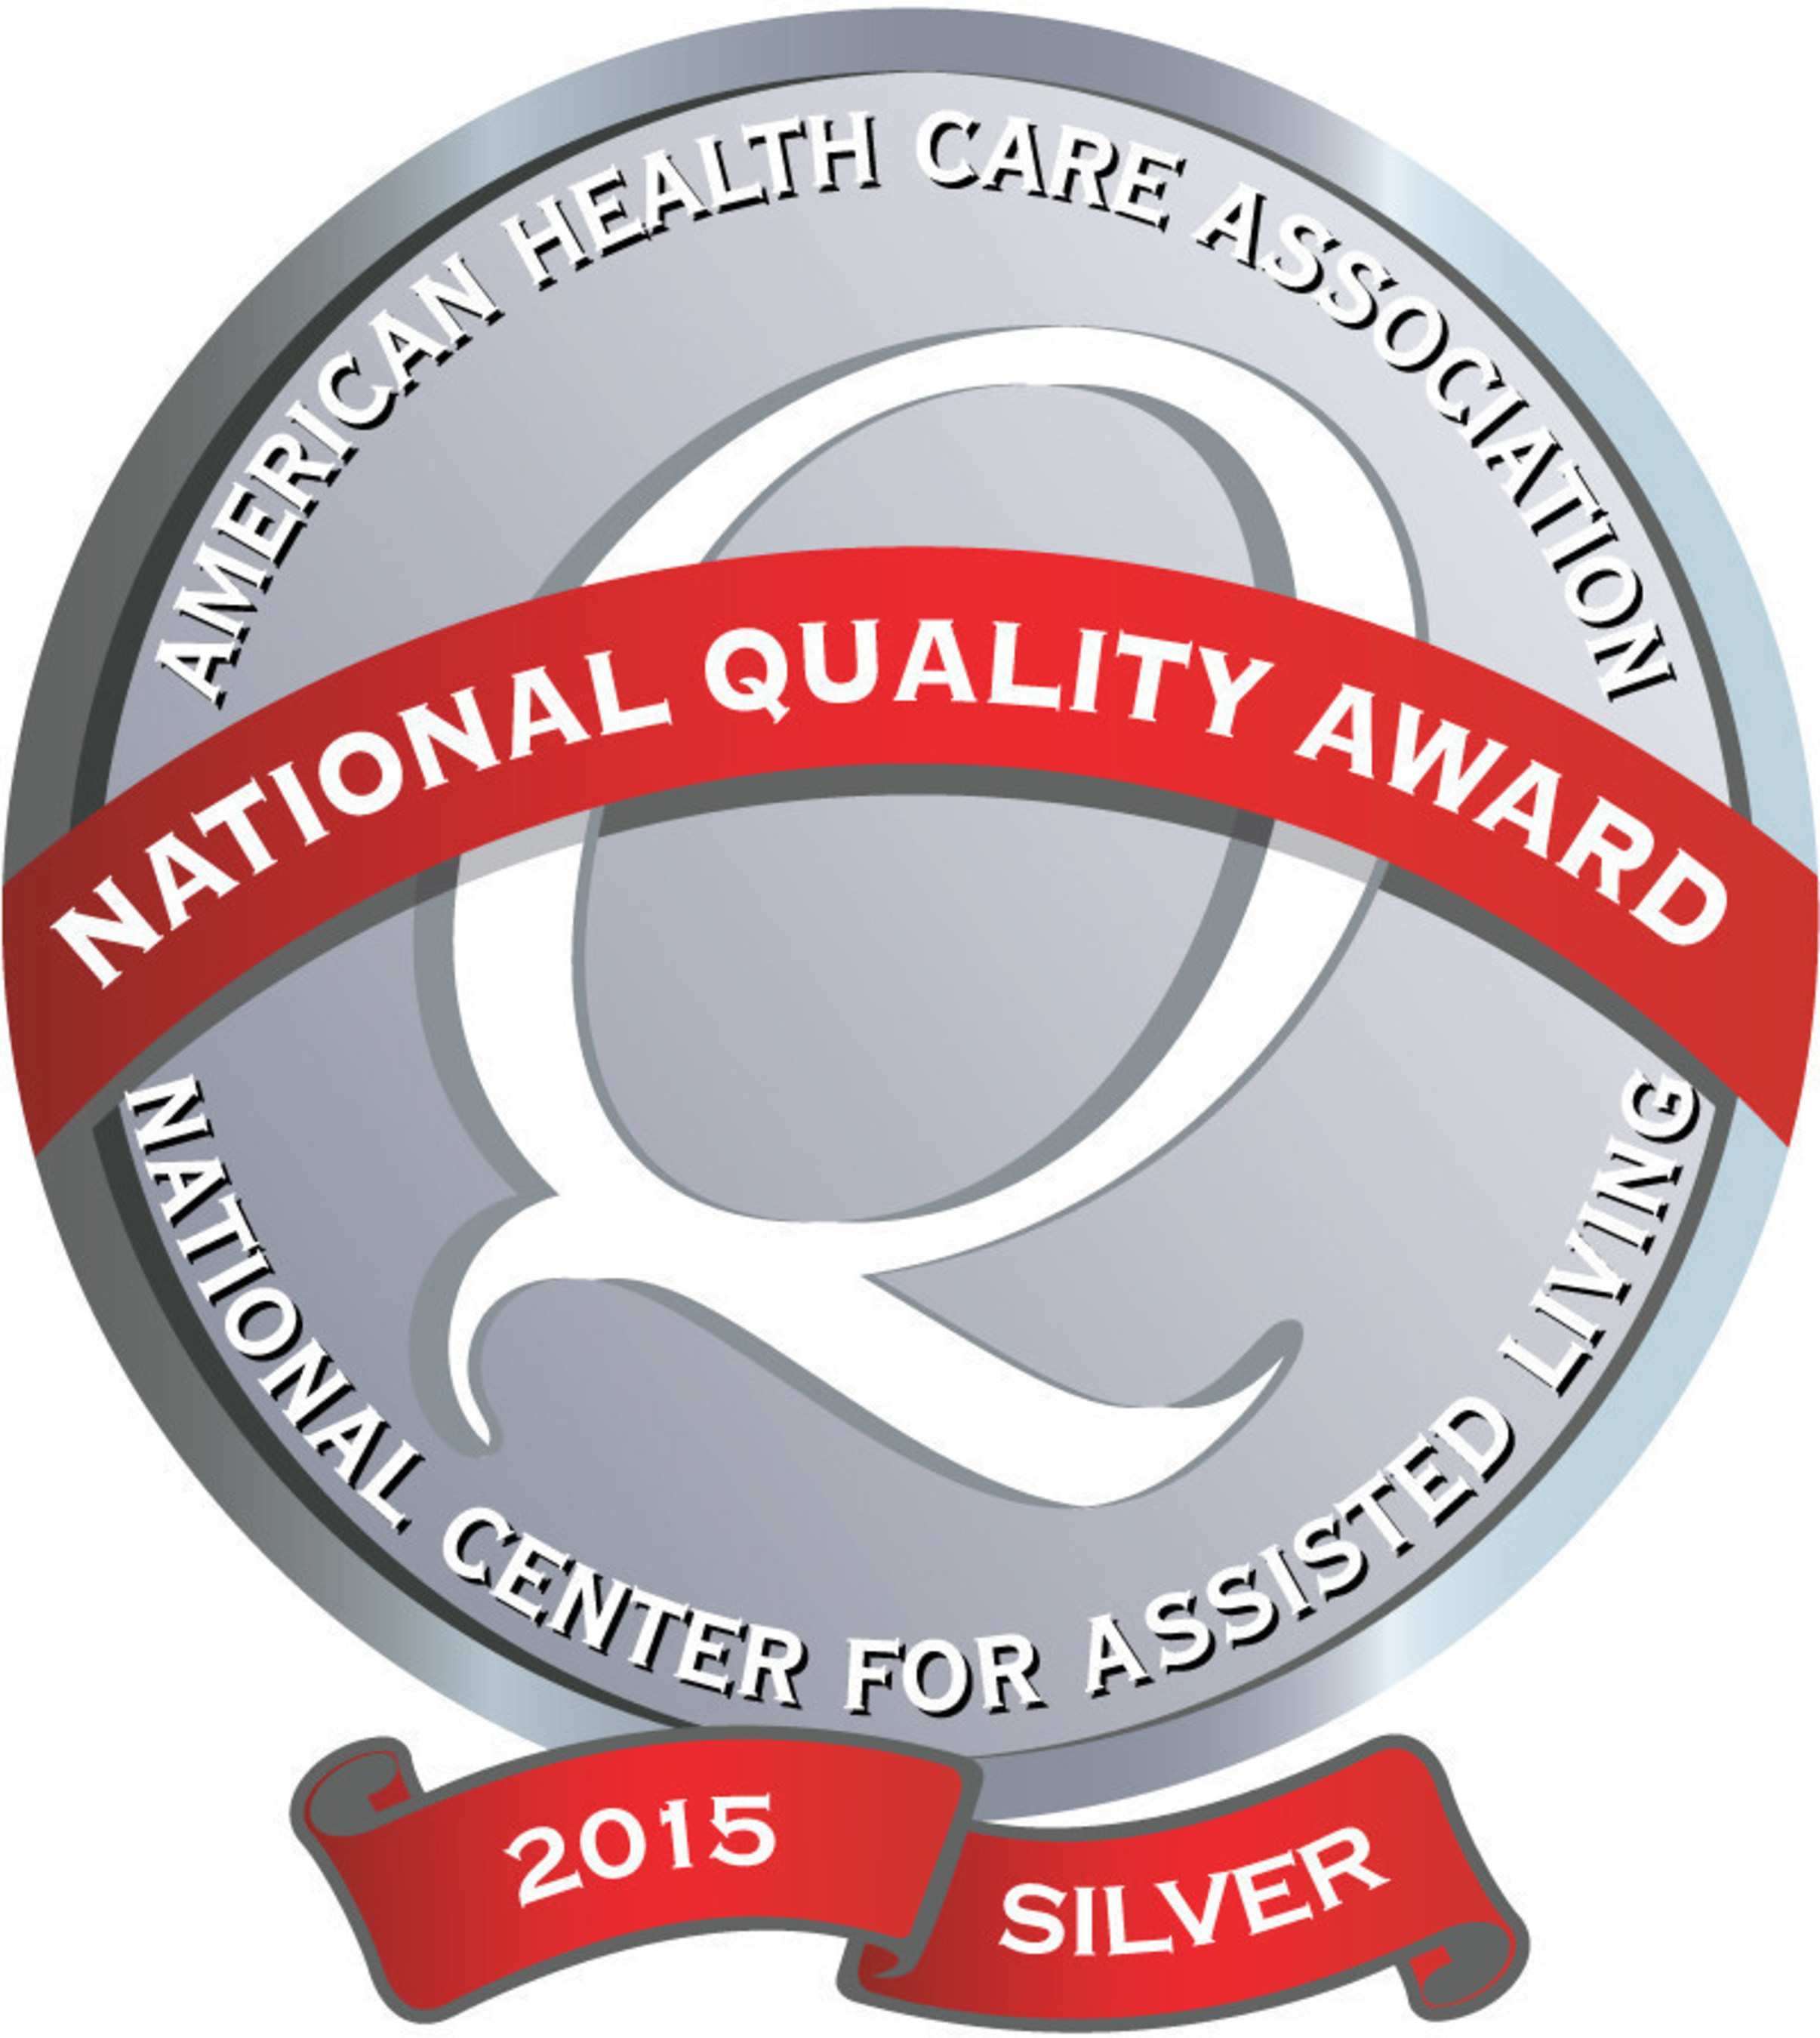 PruittHealth - Bamberg and The Oaks at Whitaker Glen - Mayview awarded AHCA National Quality Awards.